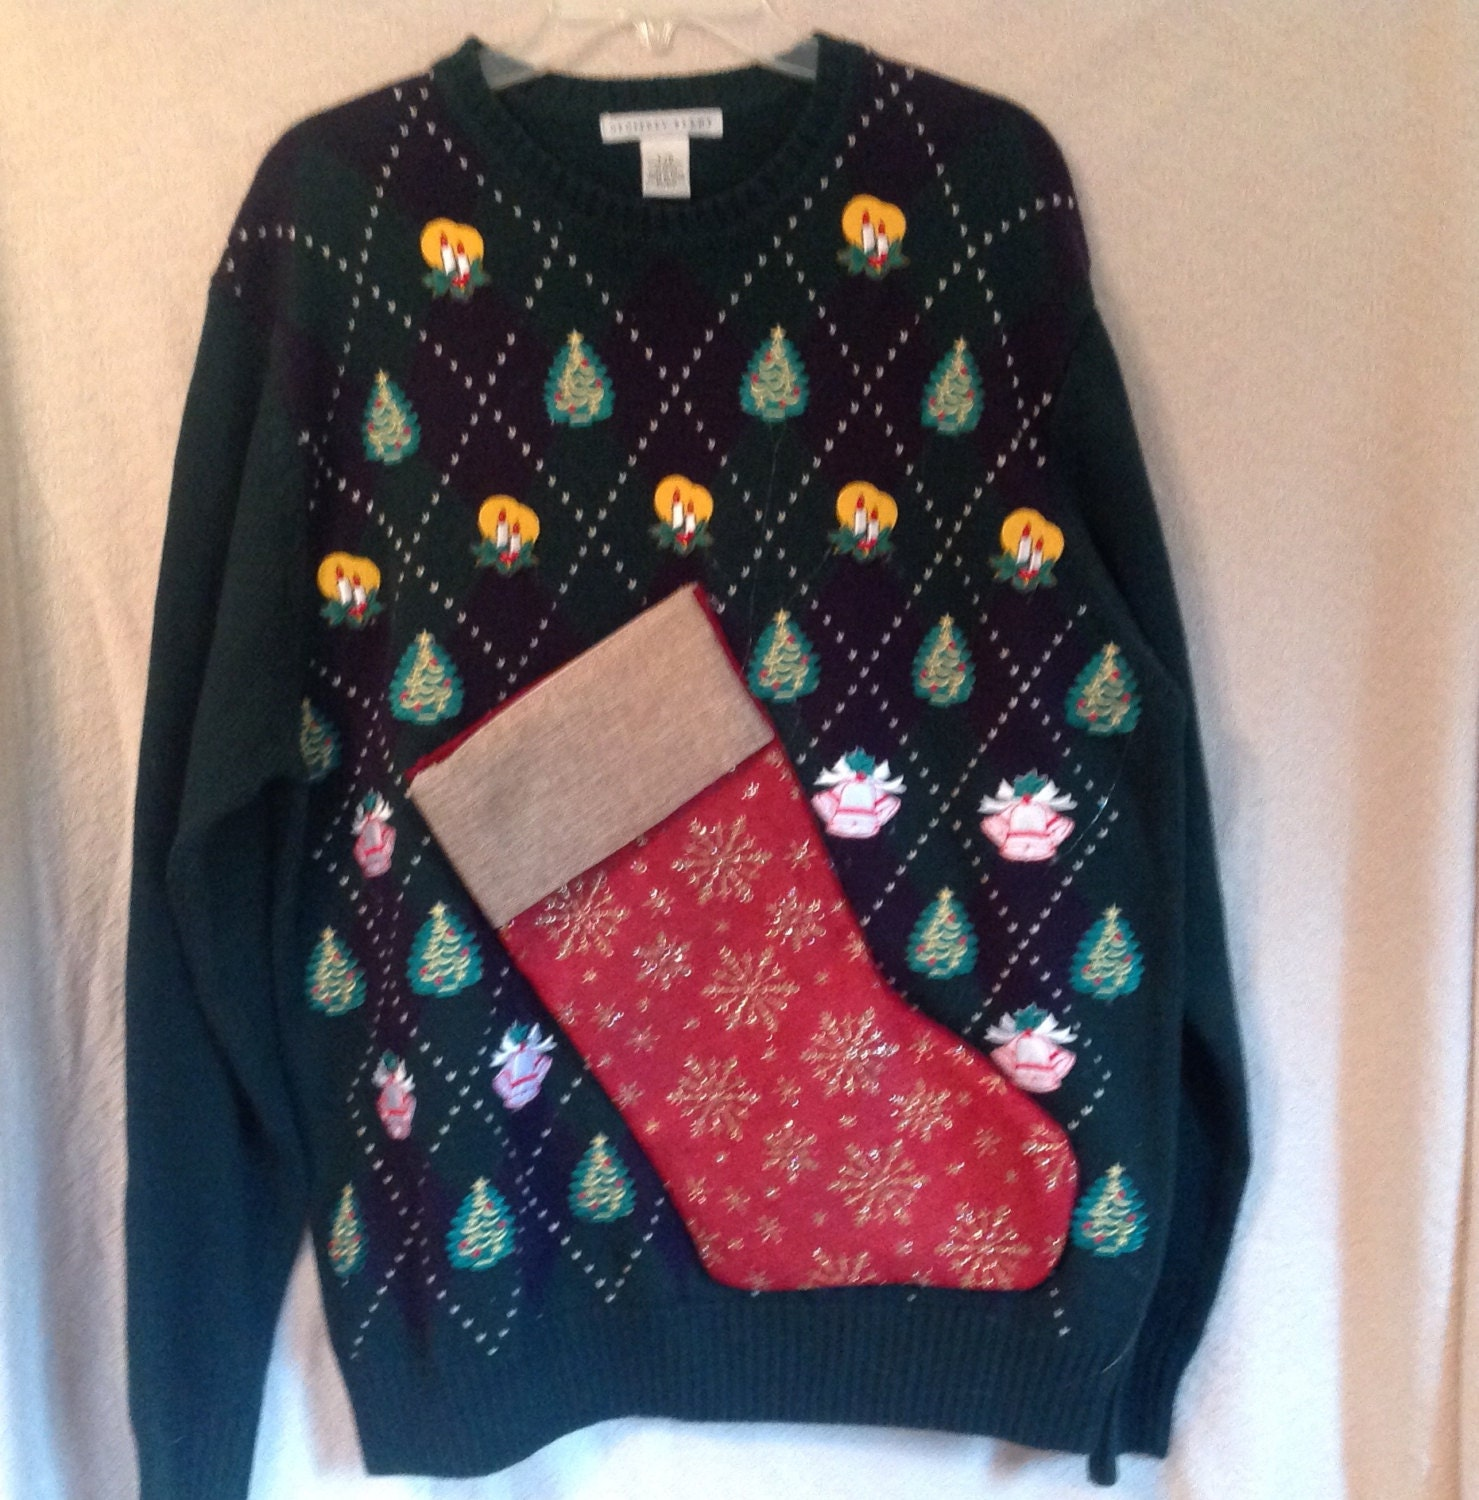 Men's Ugly Christmas Sweater L Party Hand Made Sweater with Bottle Pocket Wine Carrier Sweater BYOB Pocket nxBvln